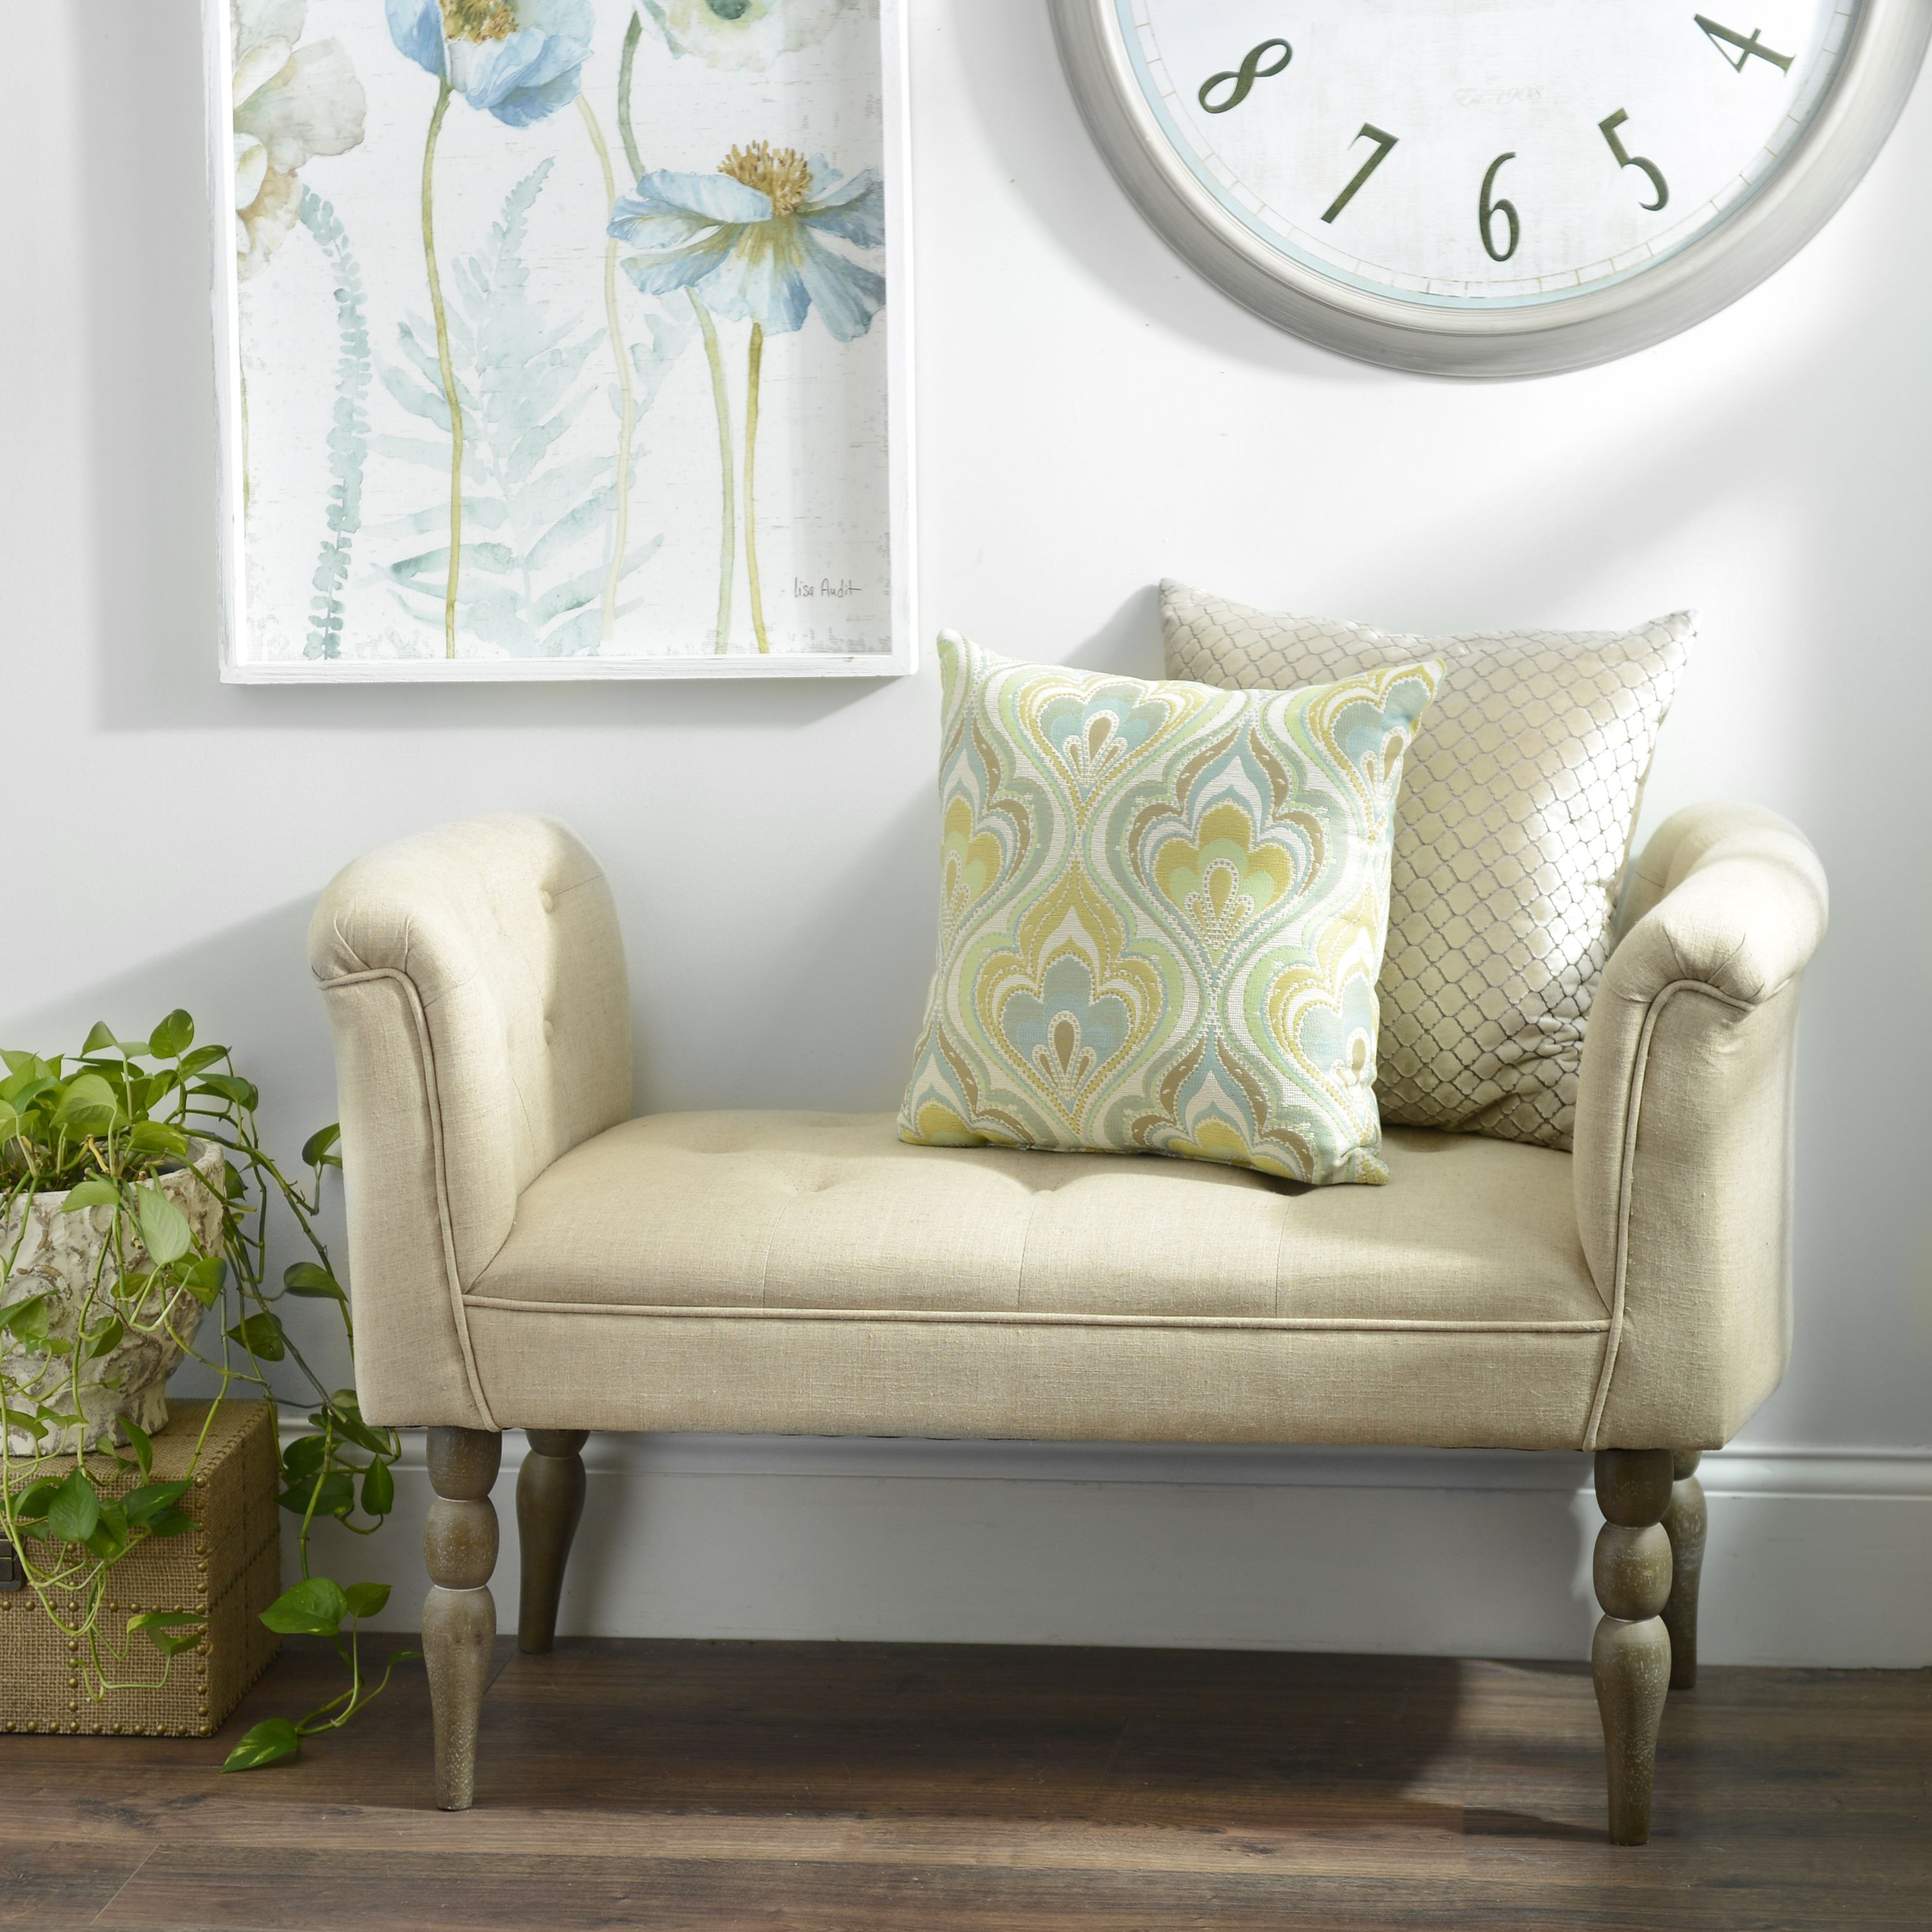 Every Room Needs Seating Benches In The Entryway Chairs Dining